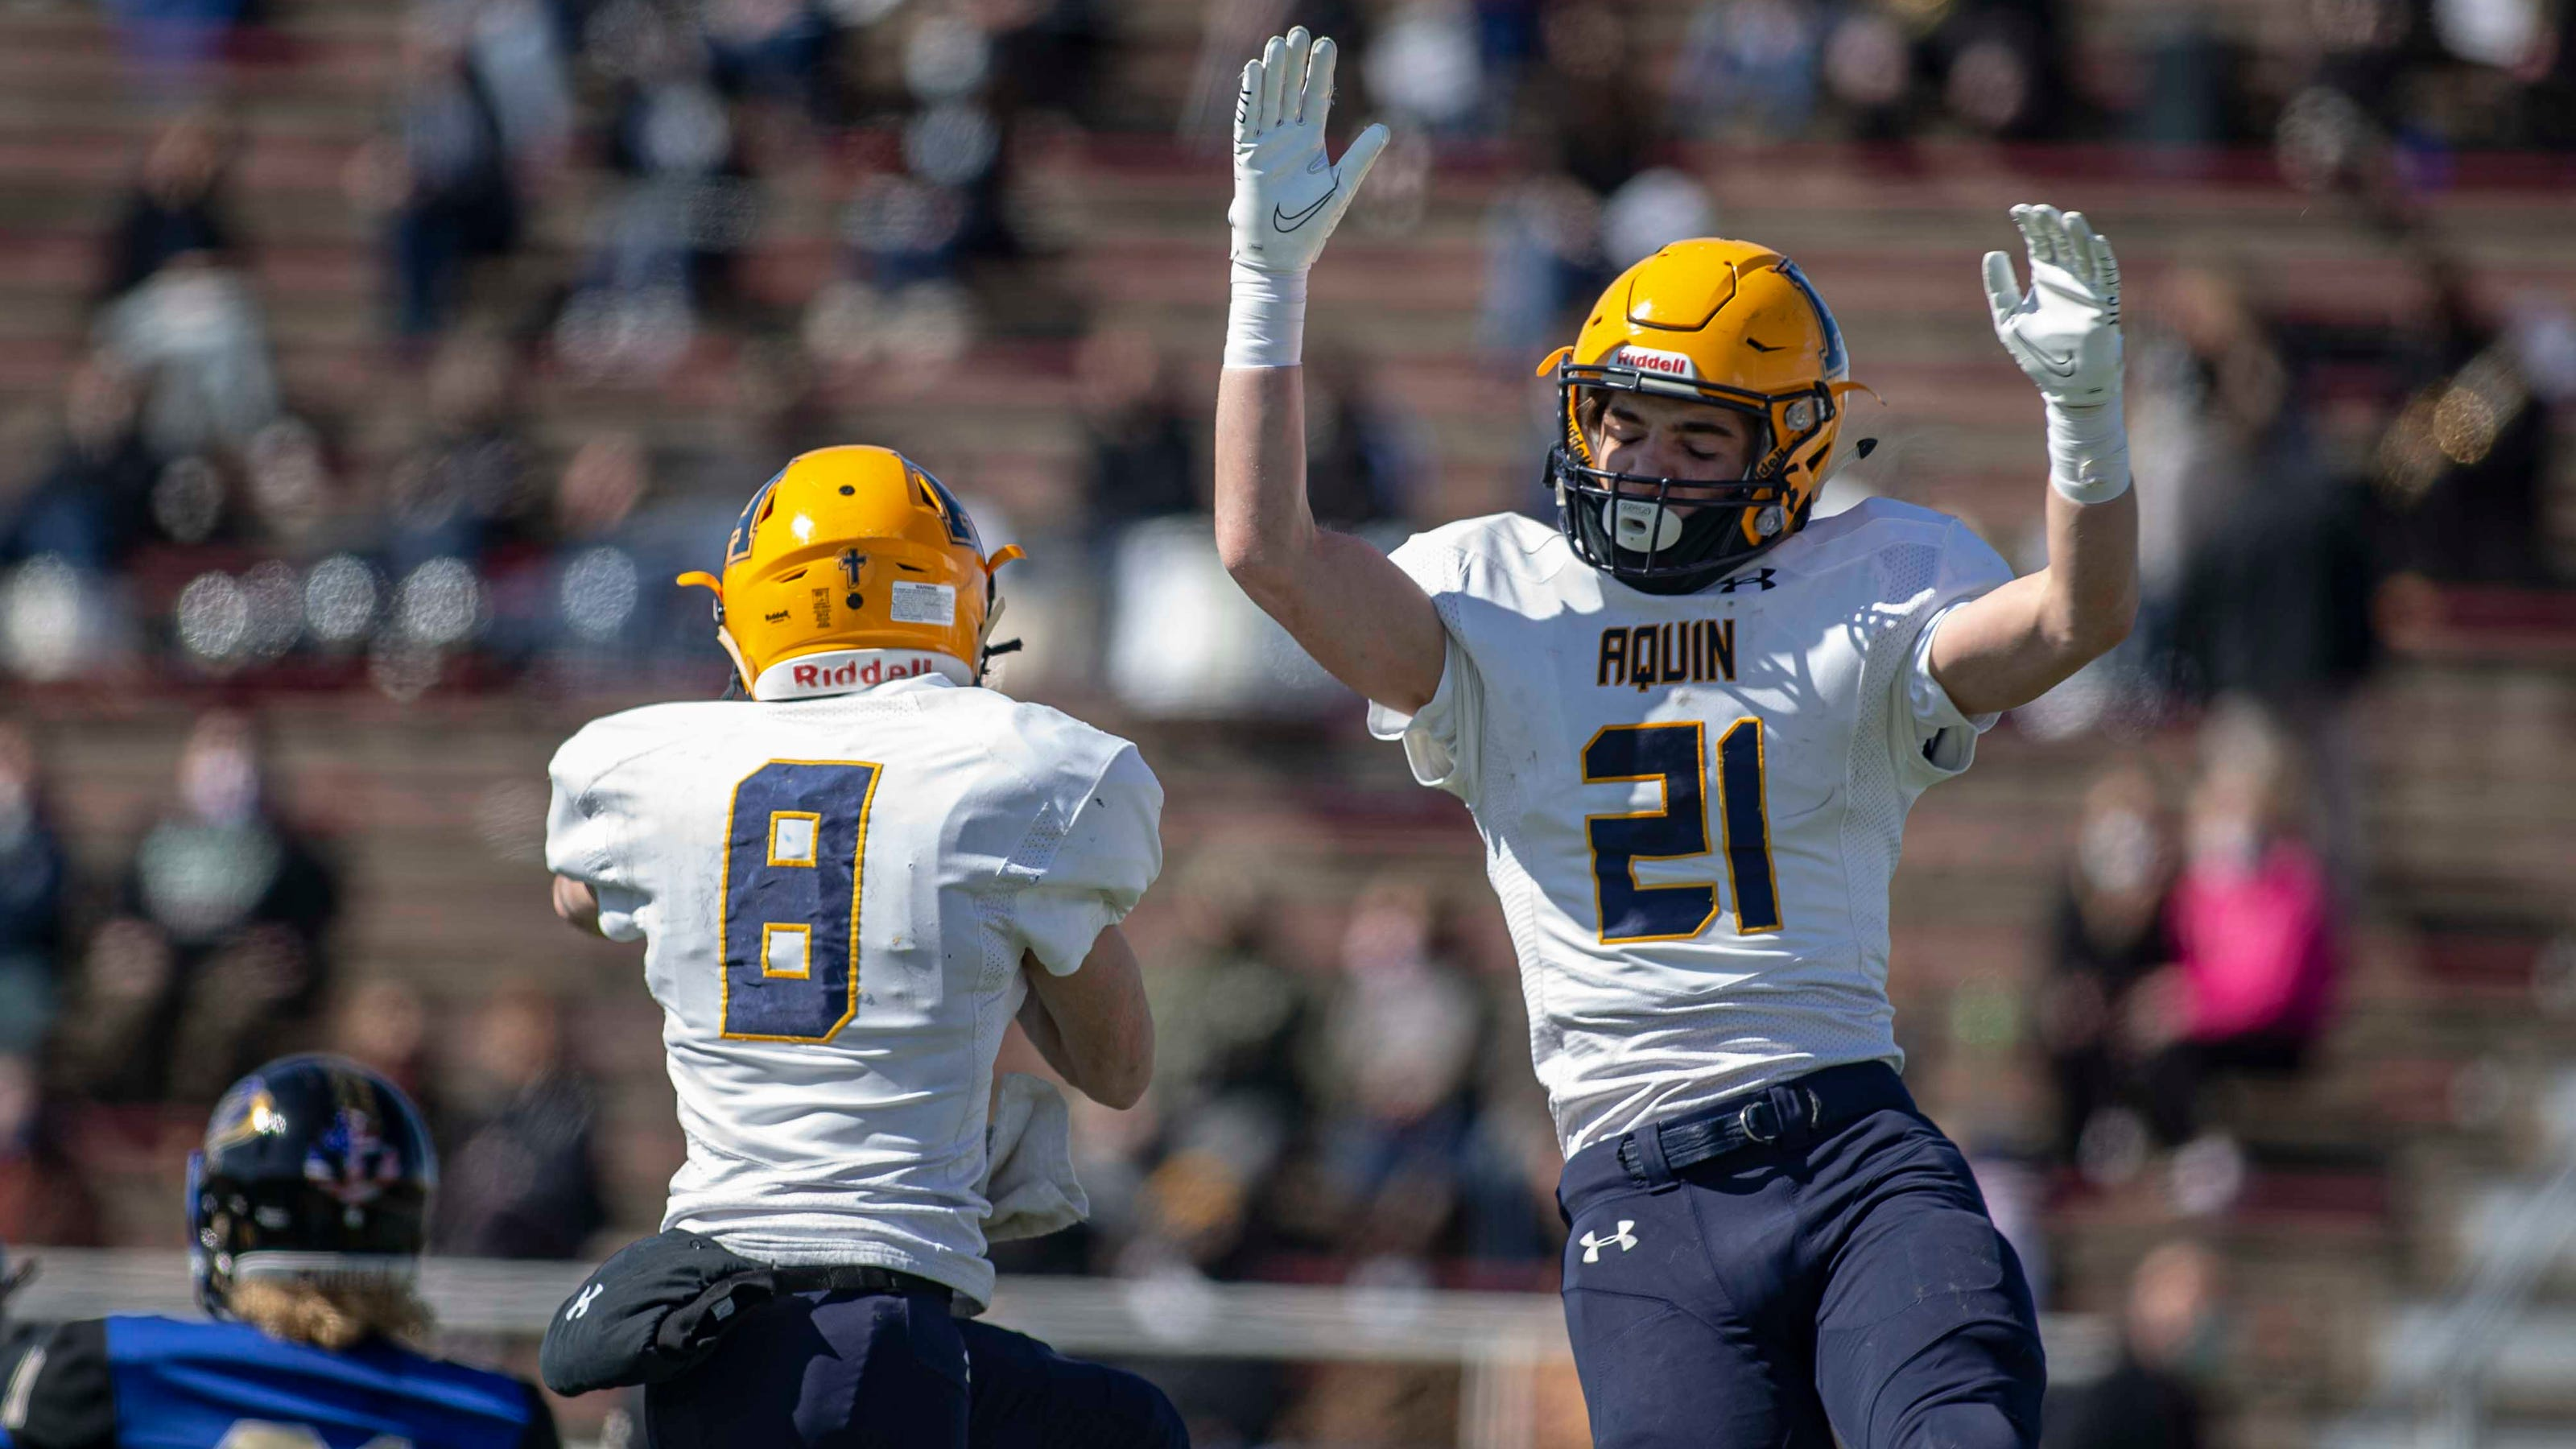 Aquin No. 1 in state and in rushing in final NUIC stats of COVID-19-shortened season